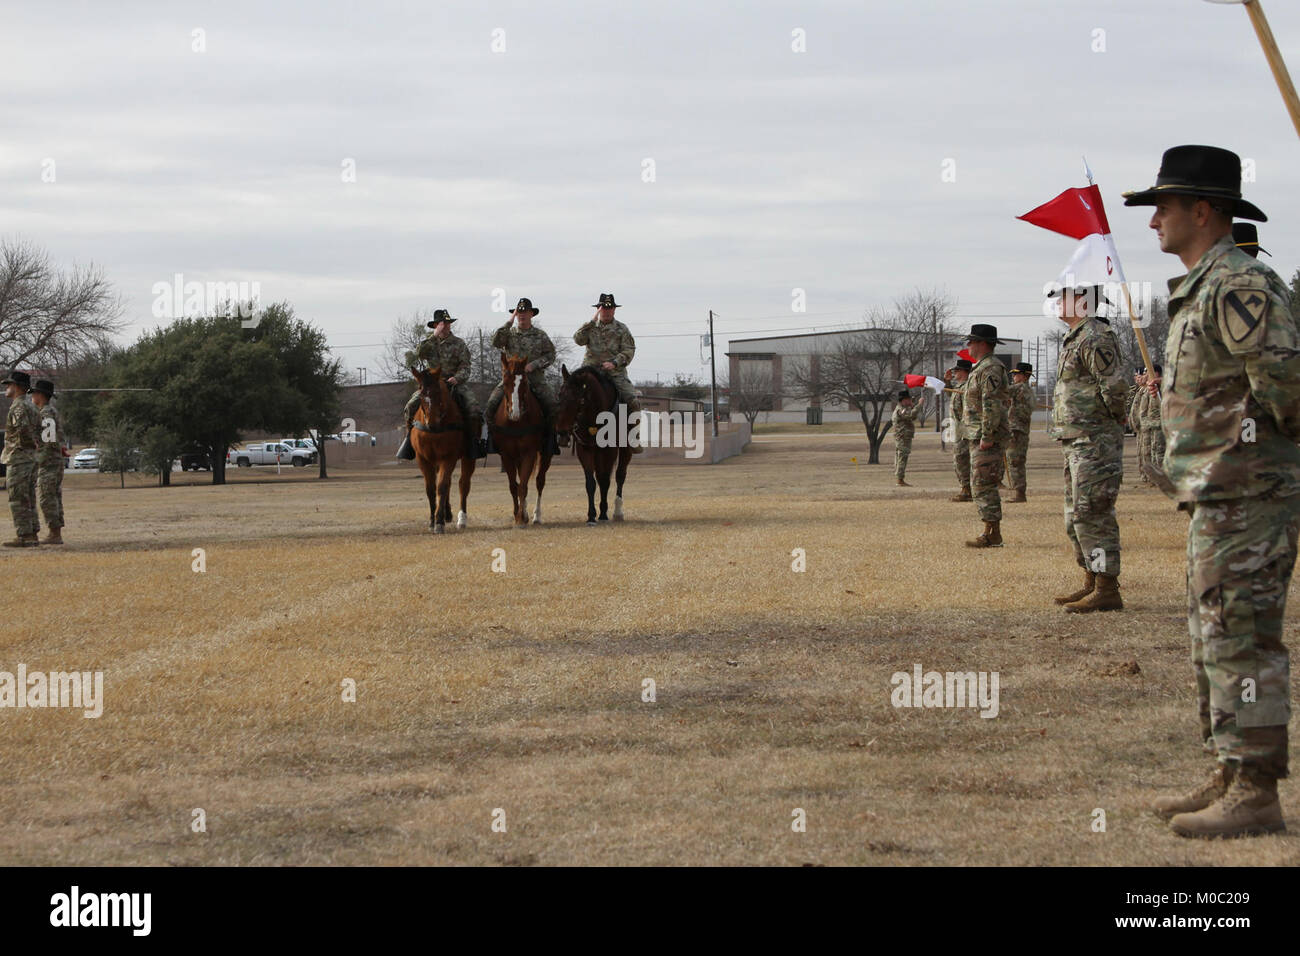 Commander Of 3rd Battalion Stock Photos & Commander Of 3rd Battalion ...